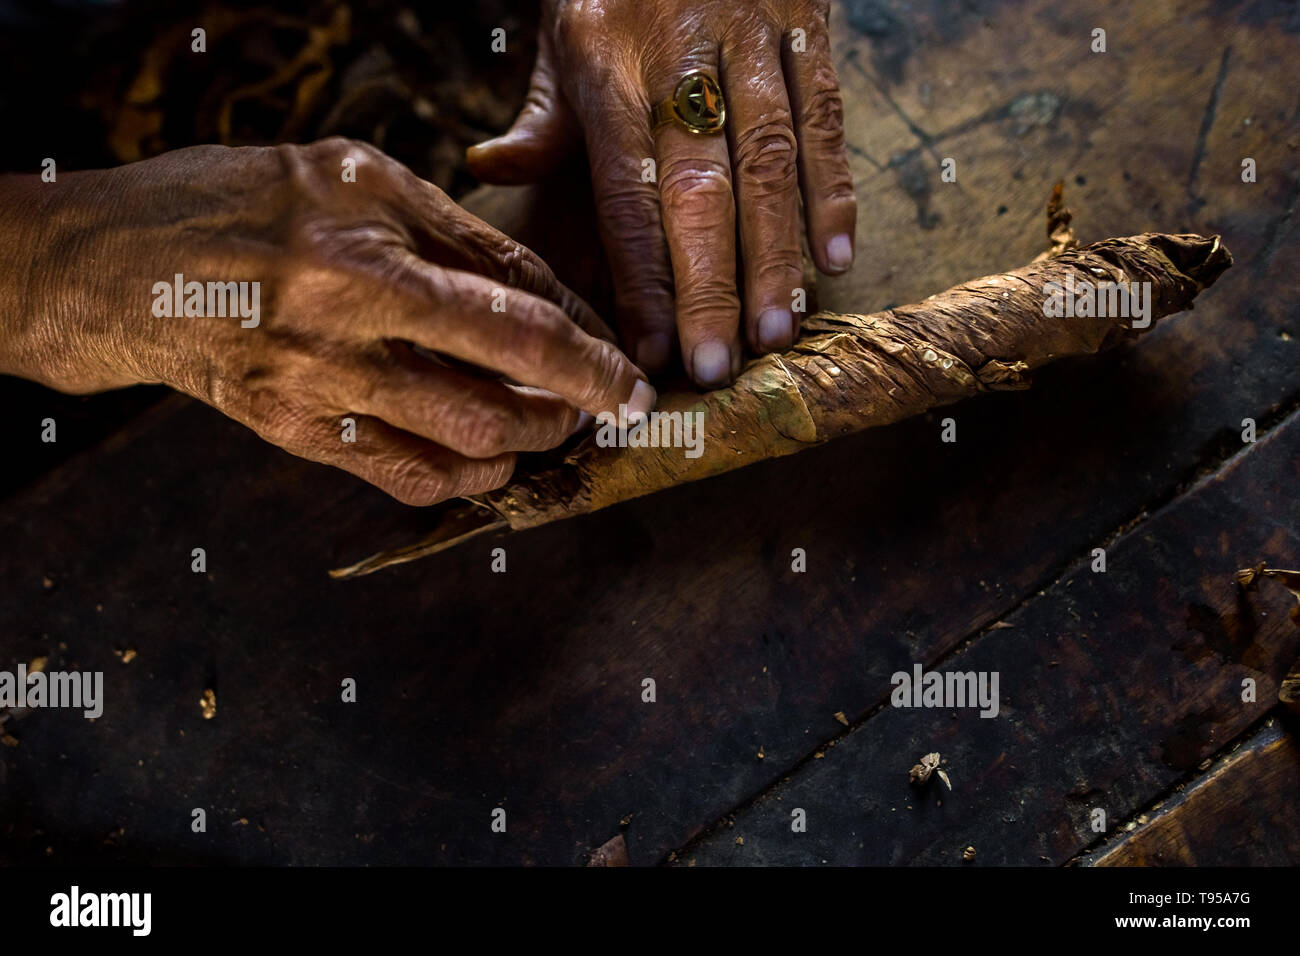 Hands of Laura Peña, a 67-years-old Salvadoran woman, are seen while rolling tobacco leaves to make handmade cigars in Suchitoto, El Salvador. - Stock Image